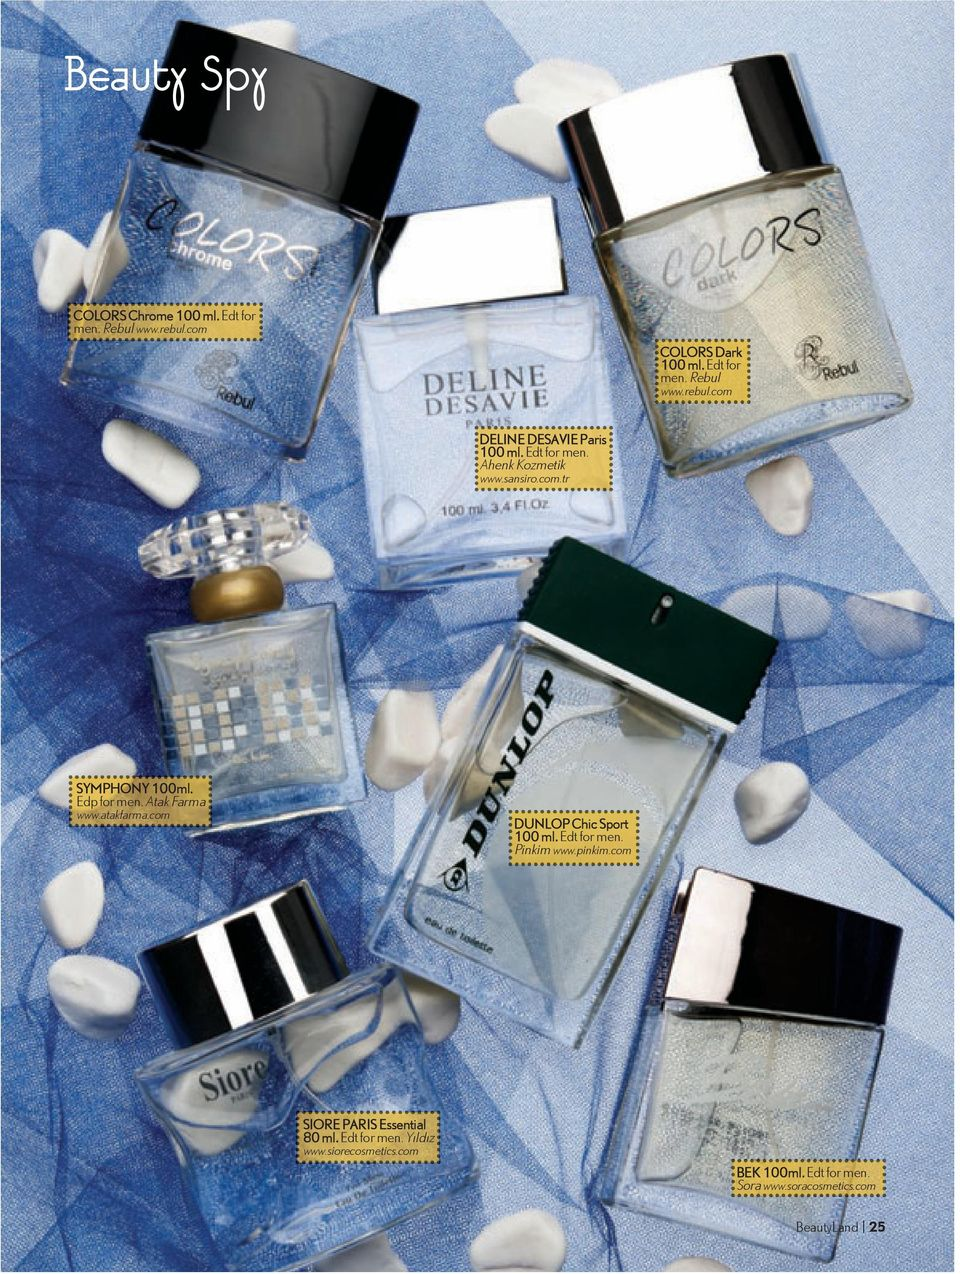 com DUNLOP Chic Sport 100 ml. Edt for men. Pinkim www.pinkim.com SIORE PARIS Essential 80 ml. Edt for men. Yıldız www.